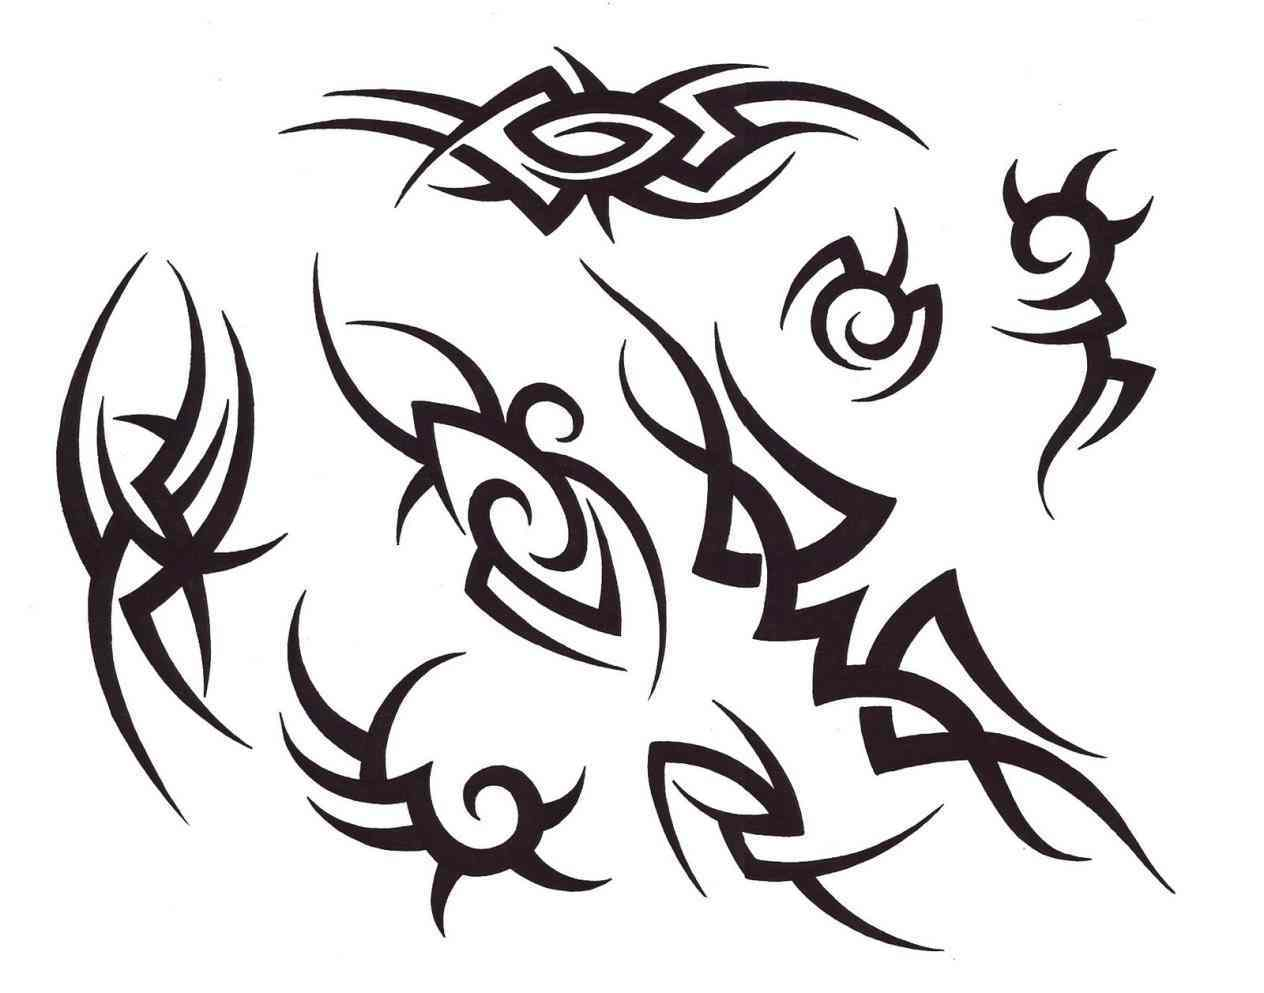 1264x993 on paper drawing a with maori and samoan patterns youtube drawing